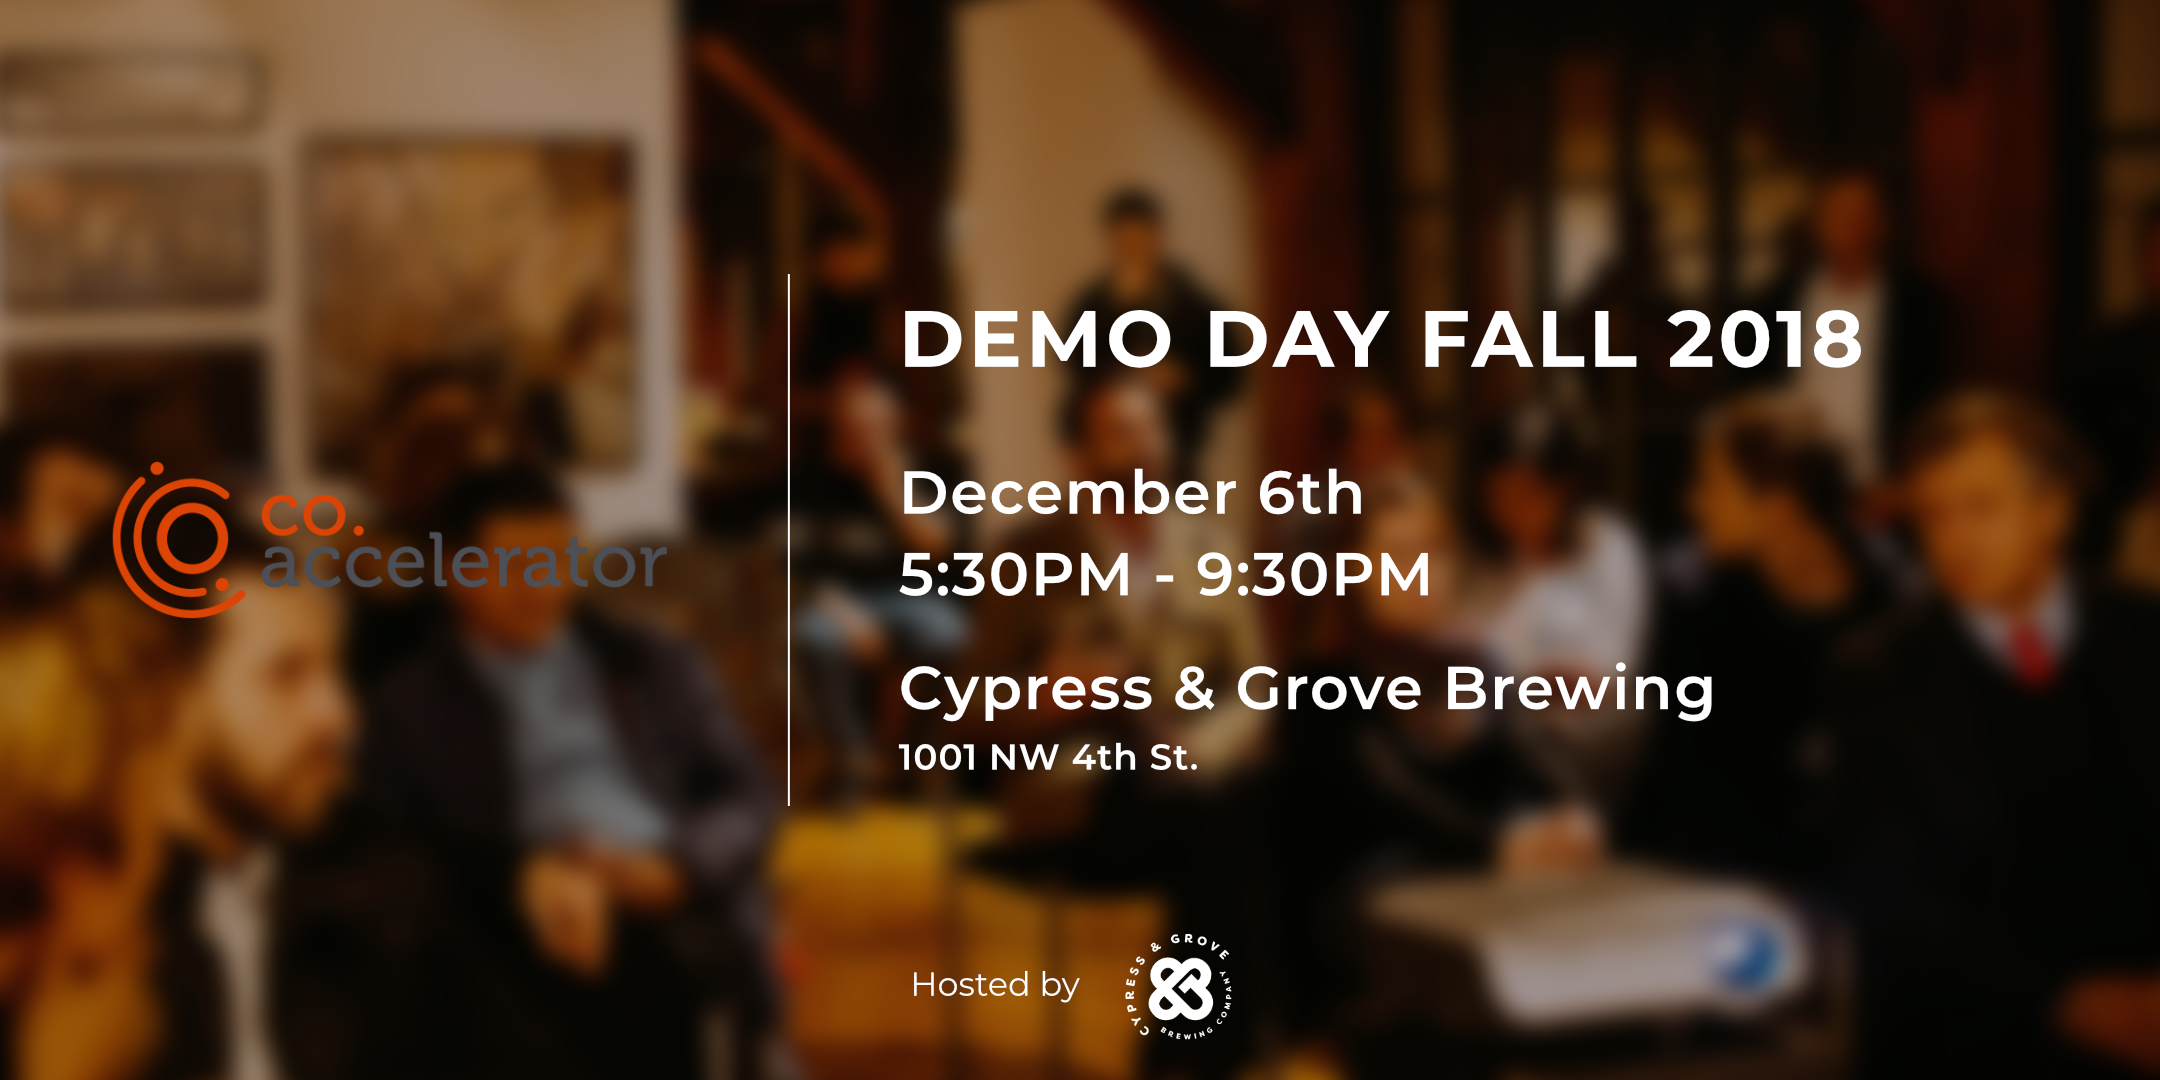 Co.Accelerator Demo Day_Fall 2018.png